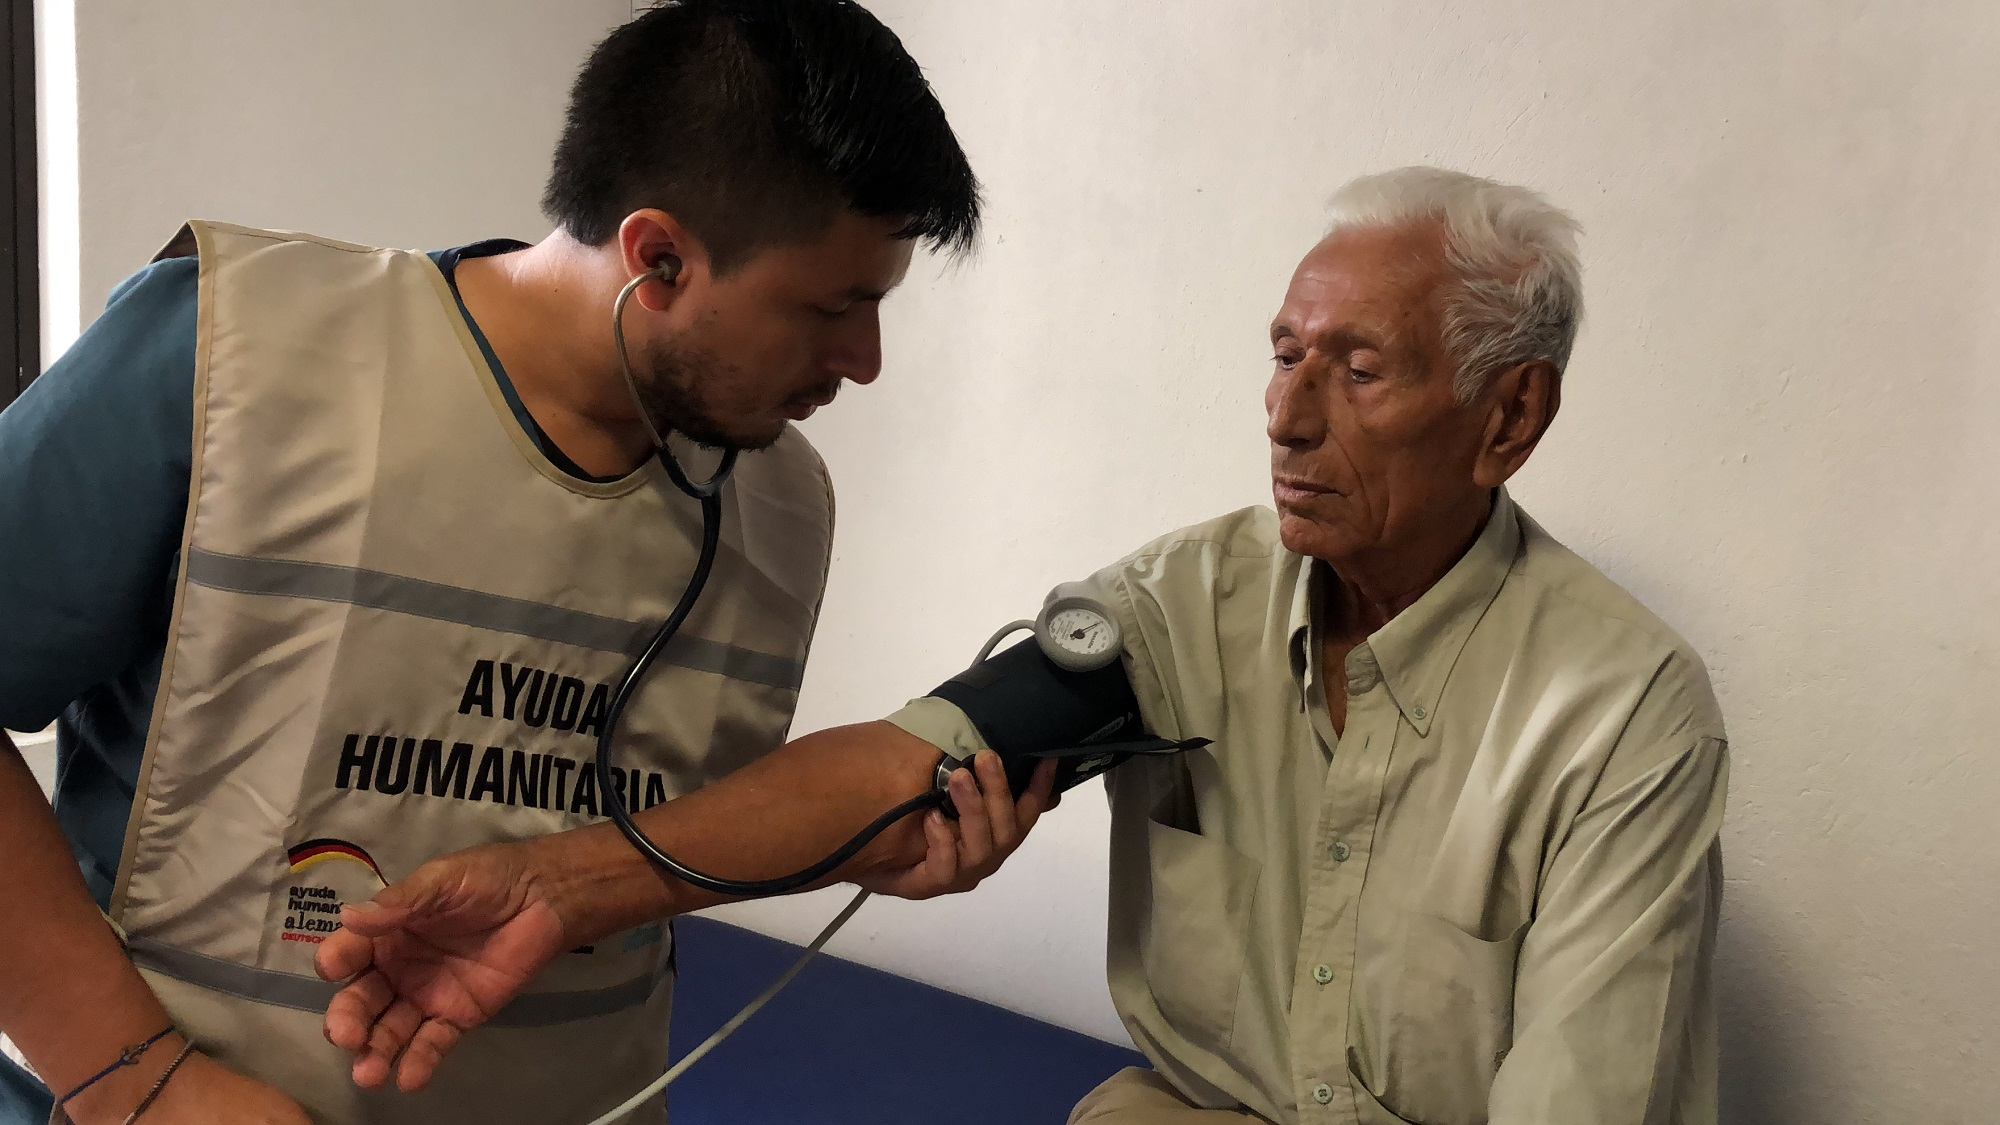 An employee of our partner organization measures the blood pressure of an elderly man